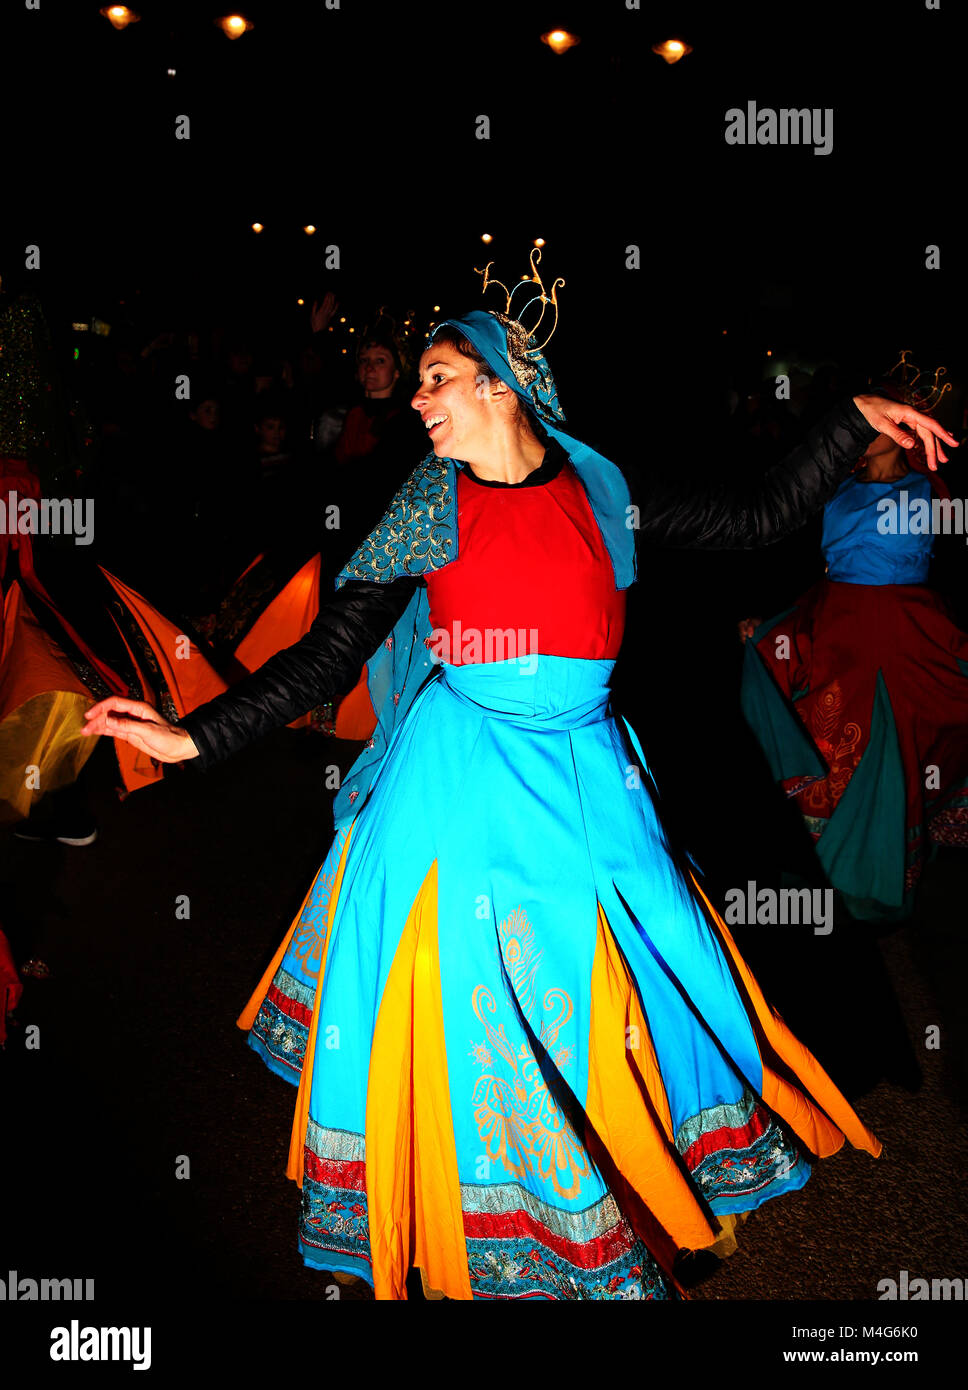 Oldham, UK. 16th Feb, 2018. A dancer takes part in entertainment at illuminate Oldham, 16th February, 2018 (C)Barbara Stock Photo